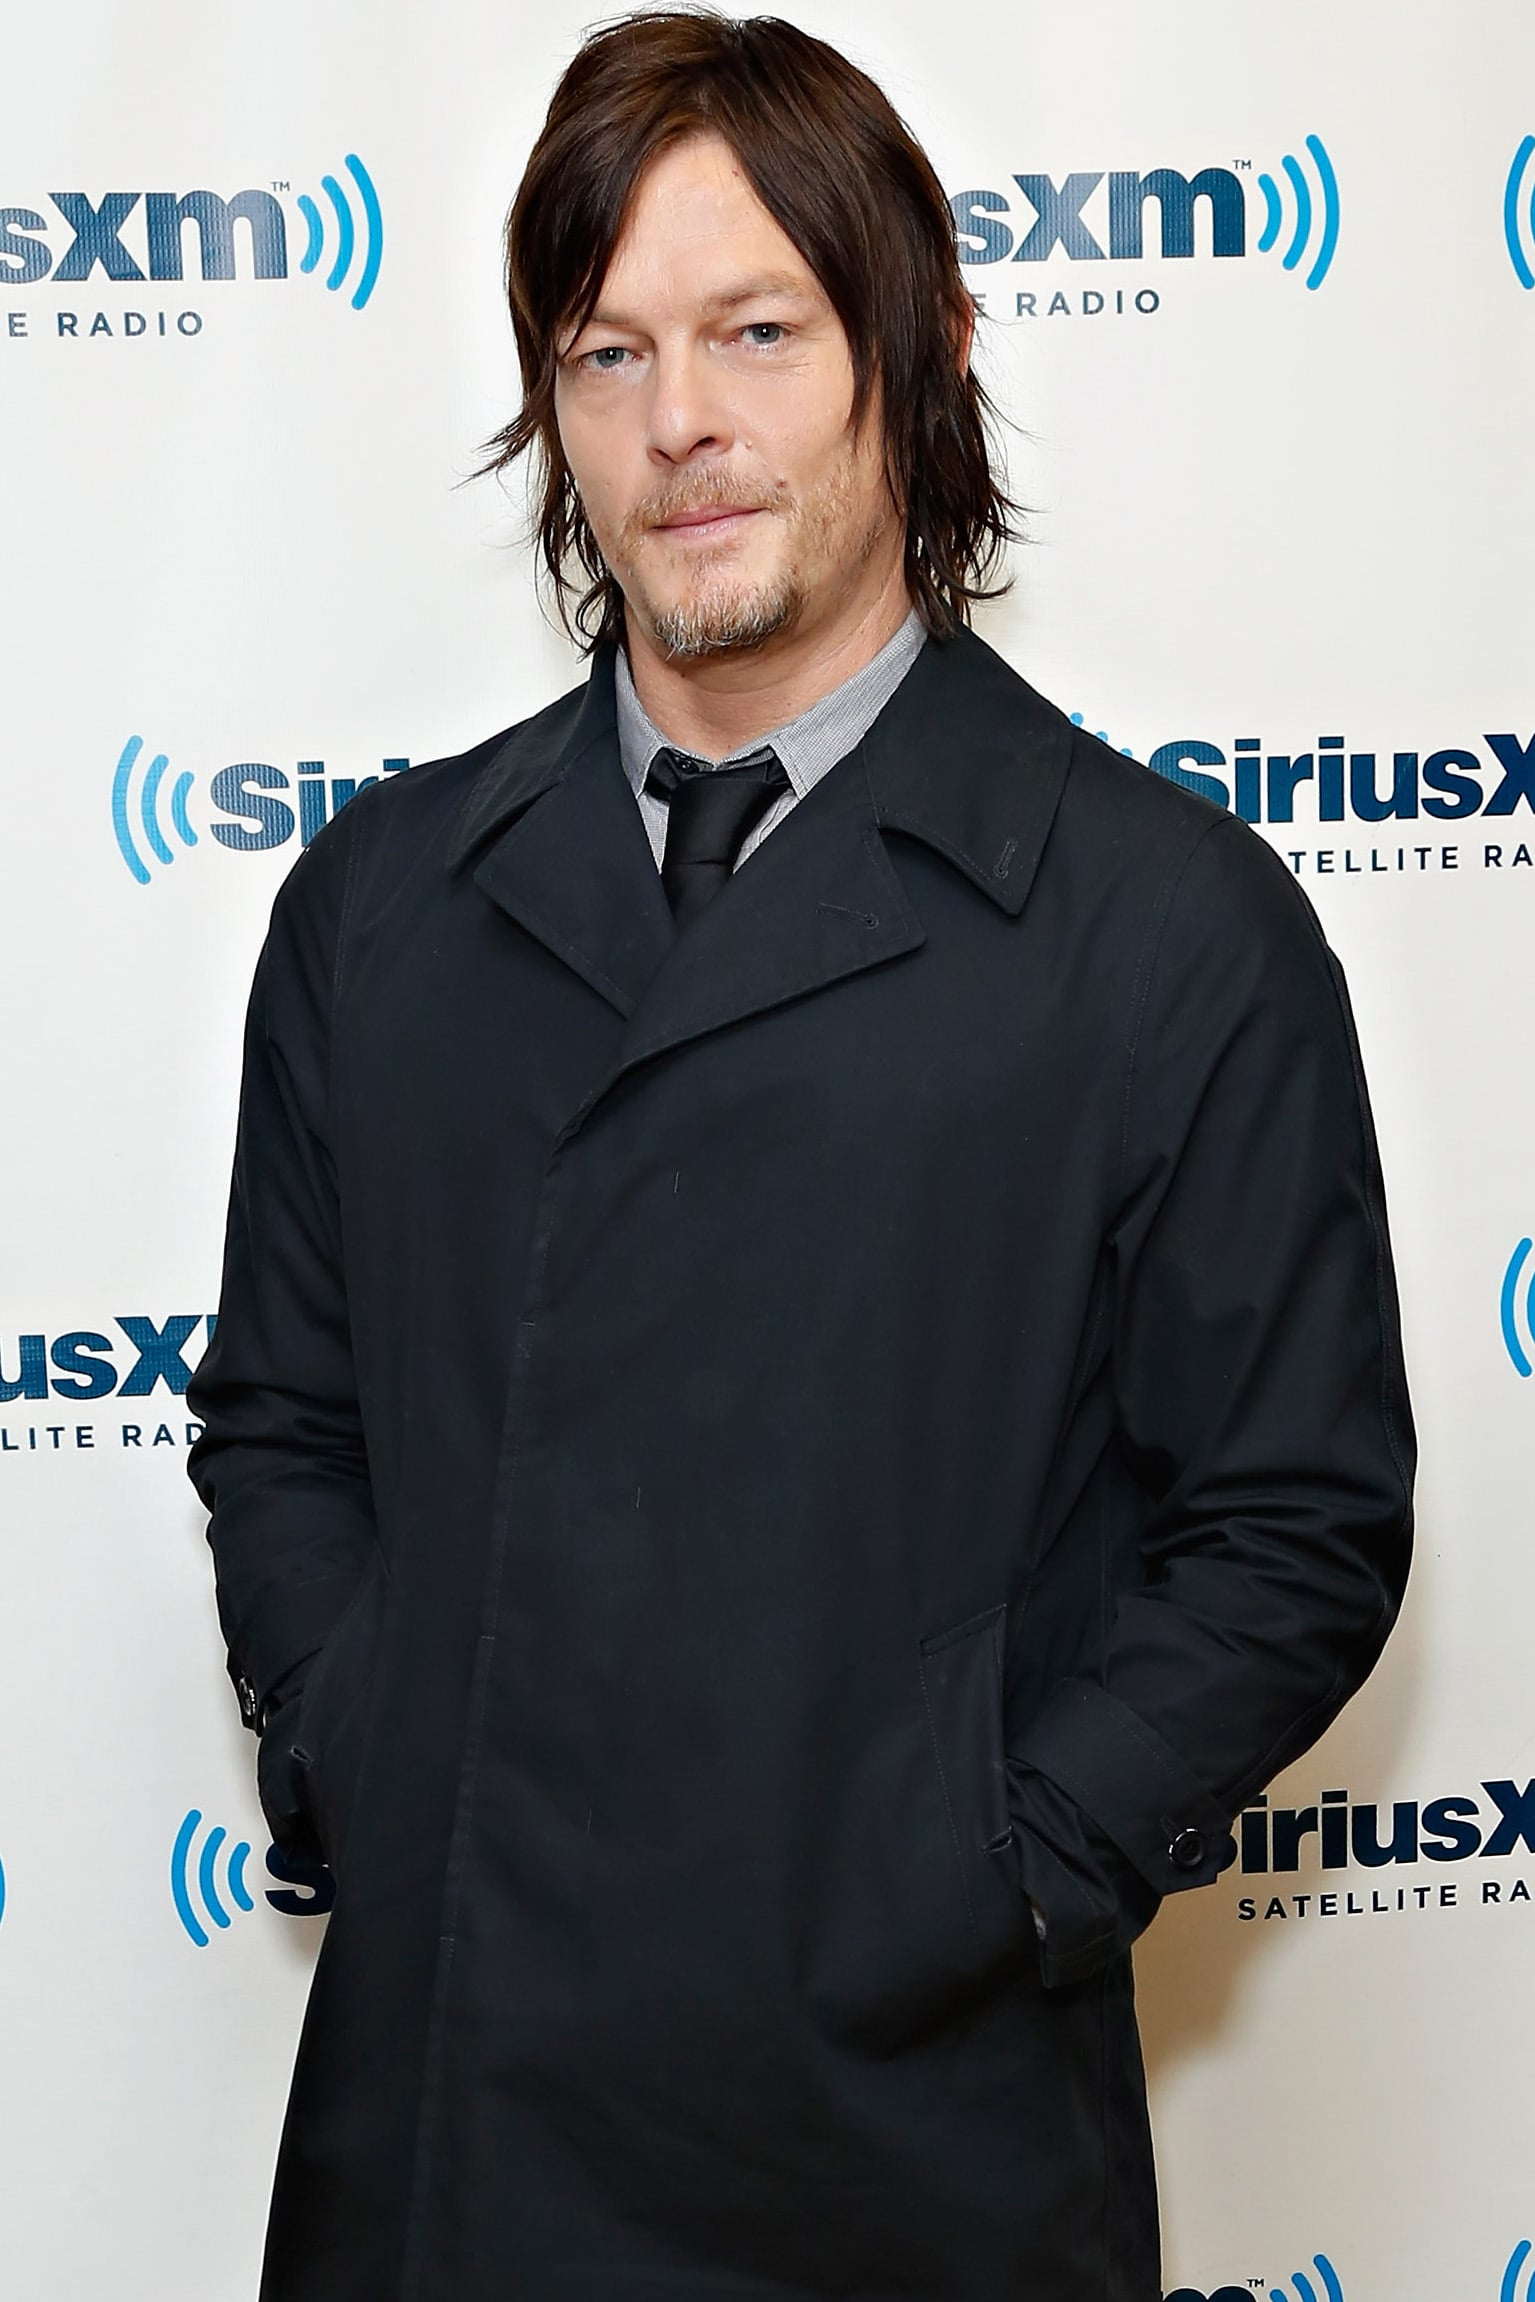 Norman Reedus joined Triple Nine, a heist movie with an impressive cast of Casey Affleck, Woody Harrelson, Chiwetel Ejiofor, Kate Winslet, Anthony Mackie, Aaron Paul, Teresa Palmer, and Gal Gadot.